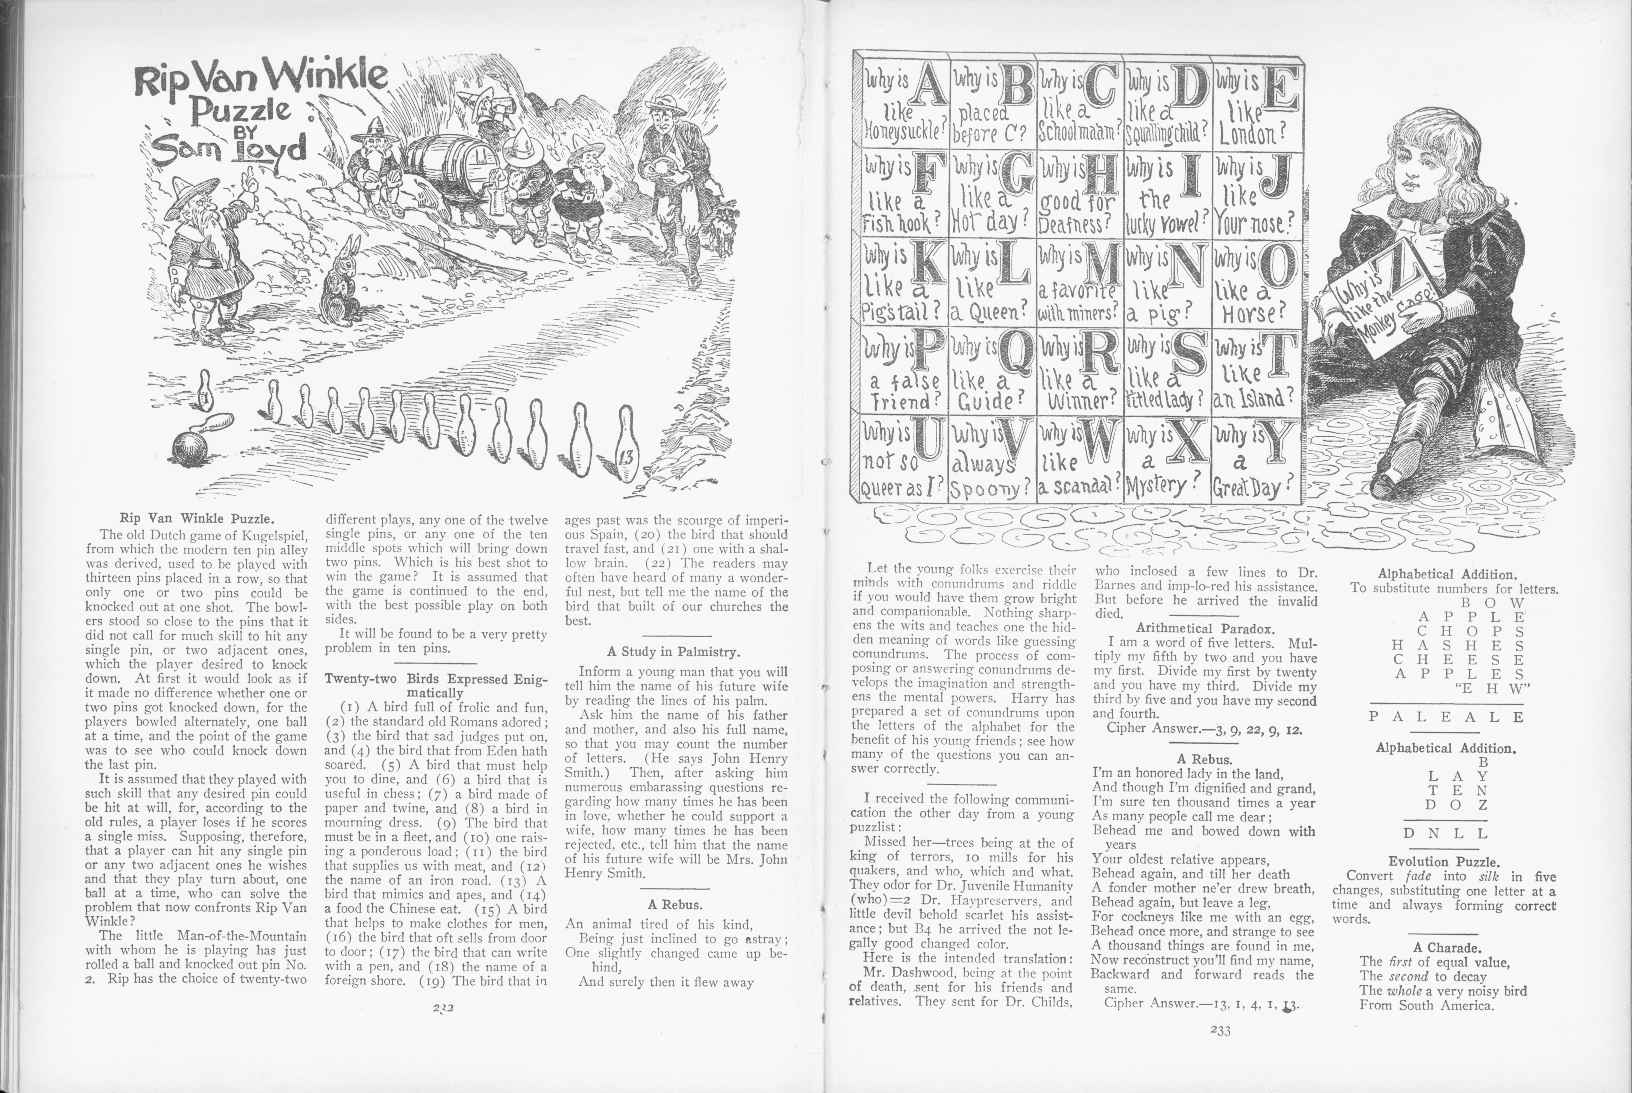 Sam Loyd - Cyclopedia of Puzzles - page 232-233